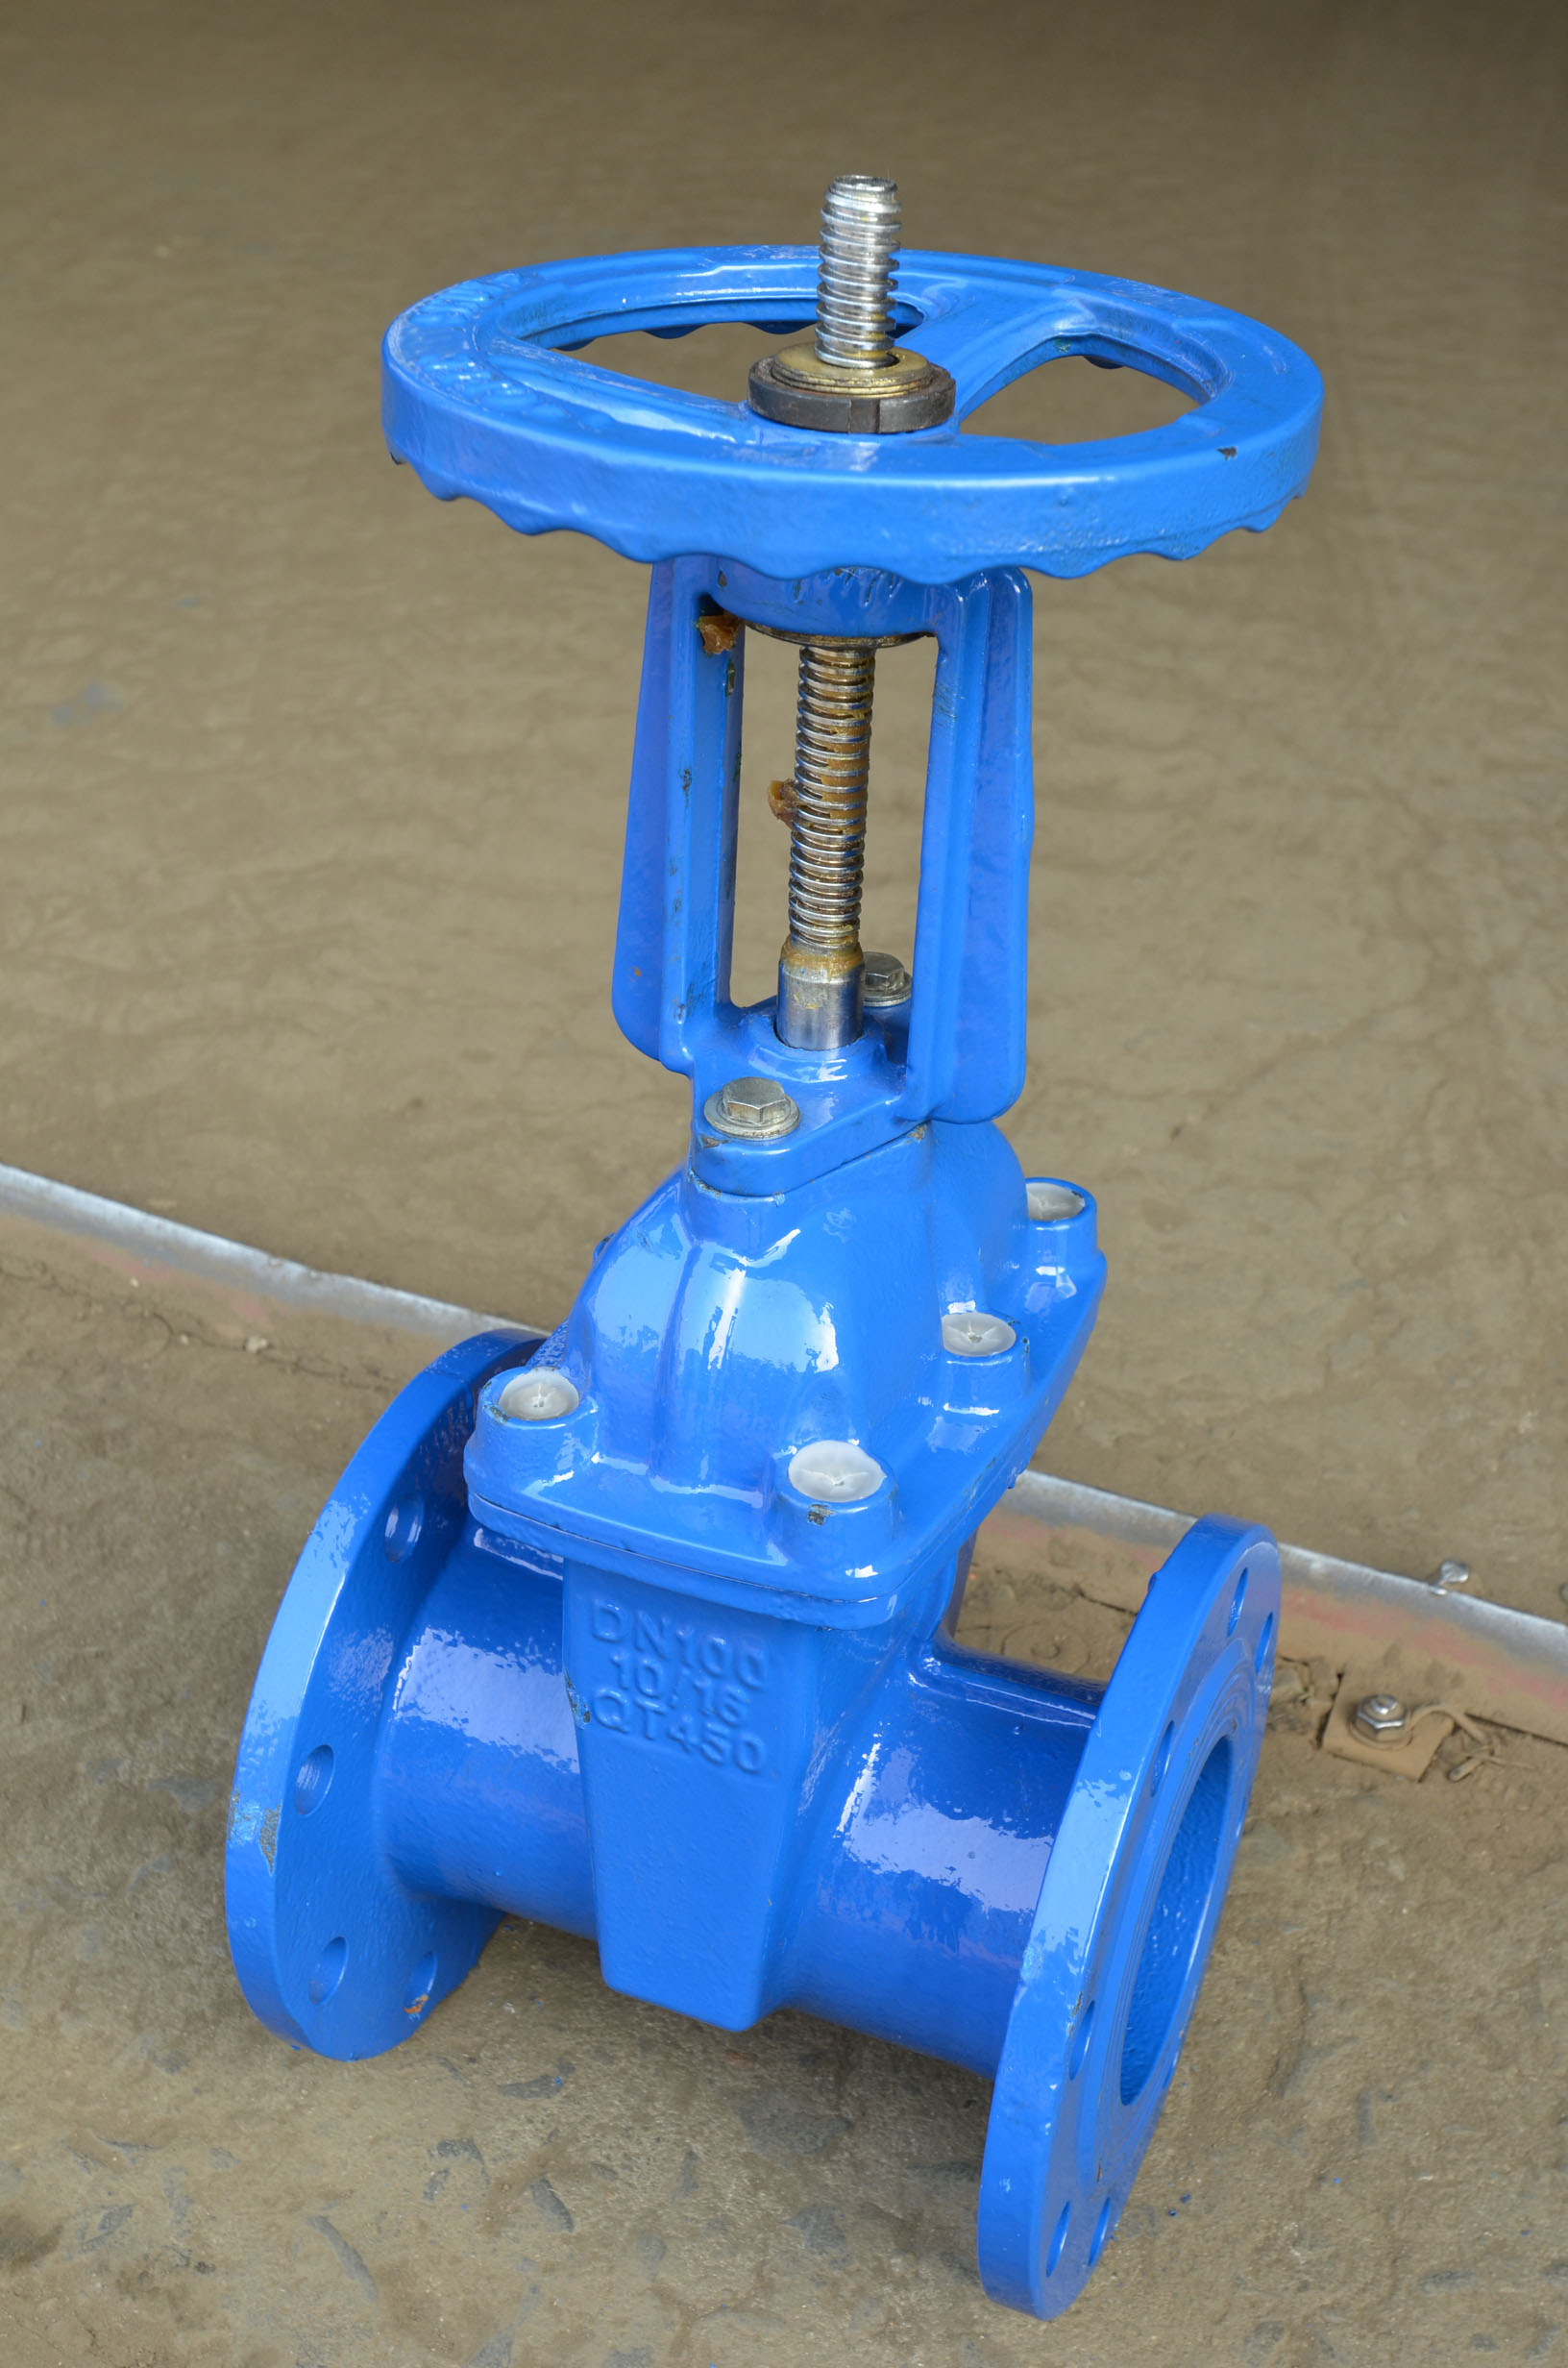 Soft-sealing gate valve